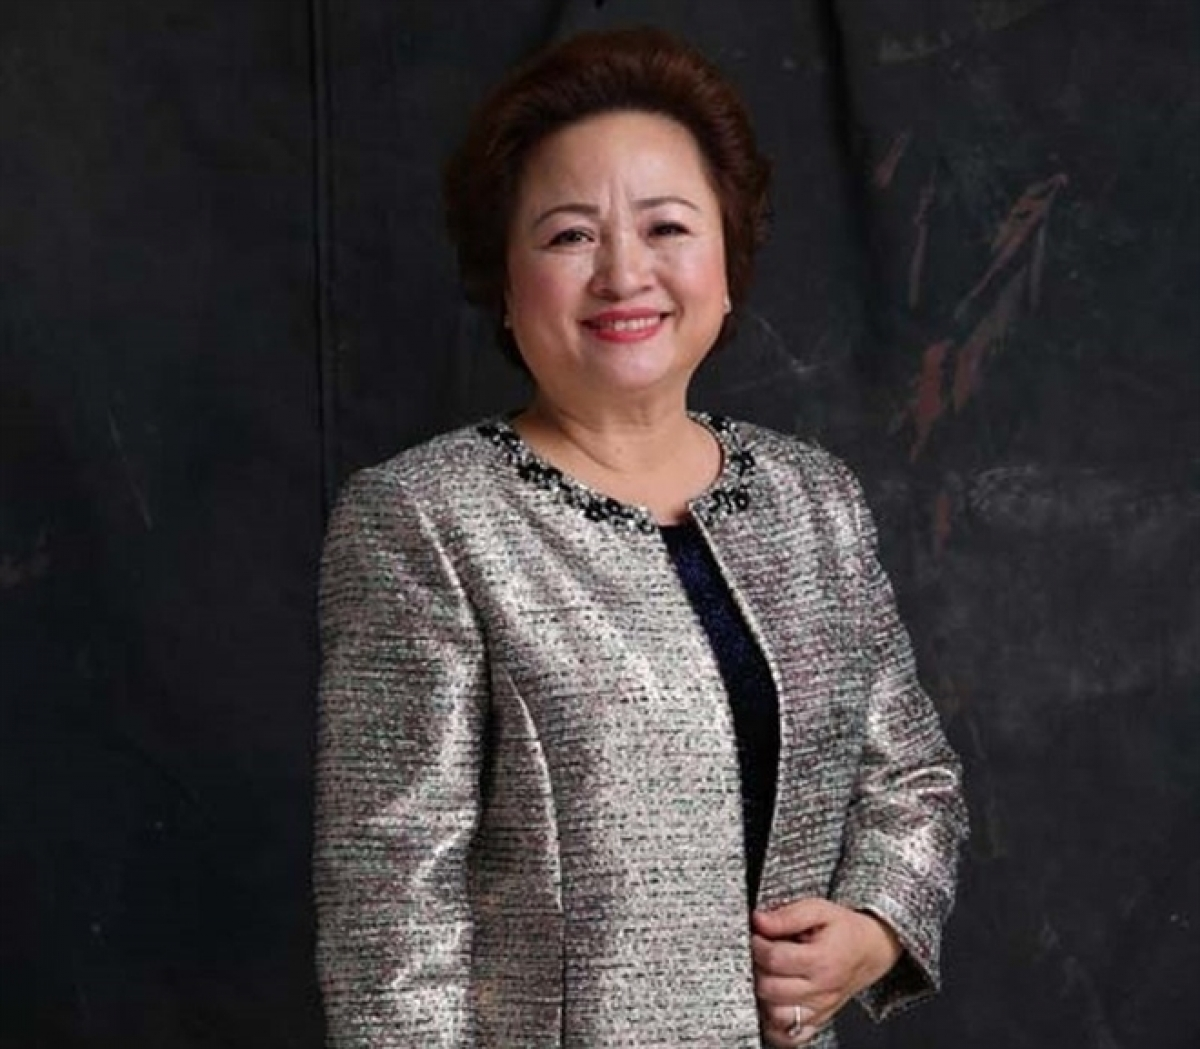 9. Nguyen Thi Nga, chairwoman of BRG Group Nguyen Thi Nga, chairwoman of BRG Group, has been named the first female Vietnamese entrepreneur to receive the Woman of Impact Award at 2020 Women Entrepreneurship Summit.   Through her leadership, BRG Group represents a pioneer across many fields, including golf, hotels, and real estate. In addition, Nga also invests in finance, banking, import and export, retail, tourism, agriculture, and other fields.